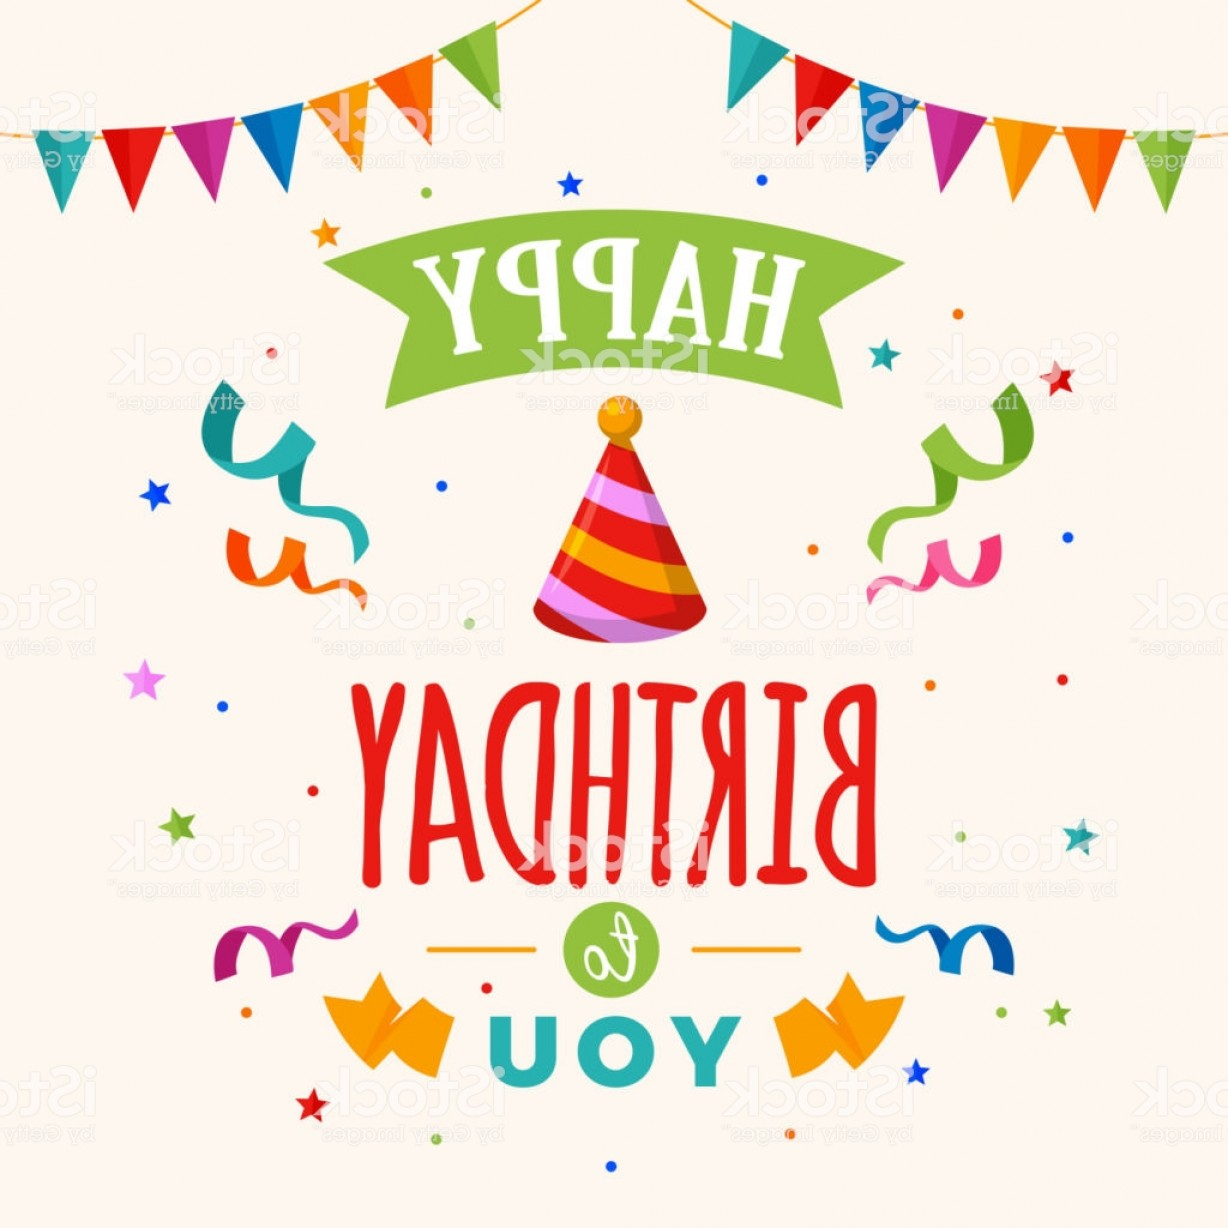 Happy Birthday Vector Art Backdrop: Happy Birthday To You Greeting Card Vector Party Hat Illustration With Flag And Gm